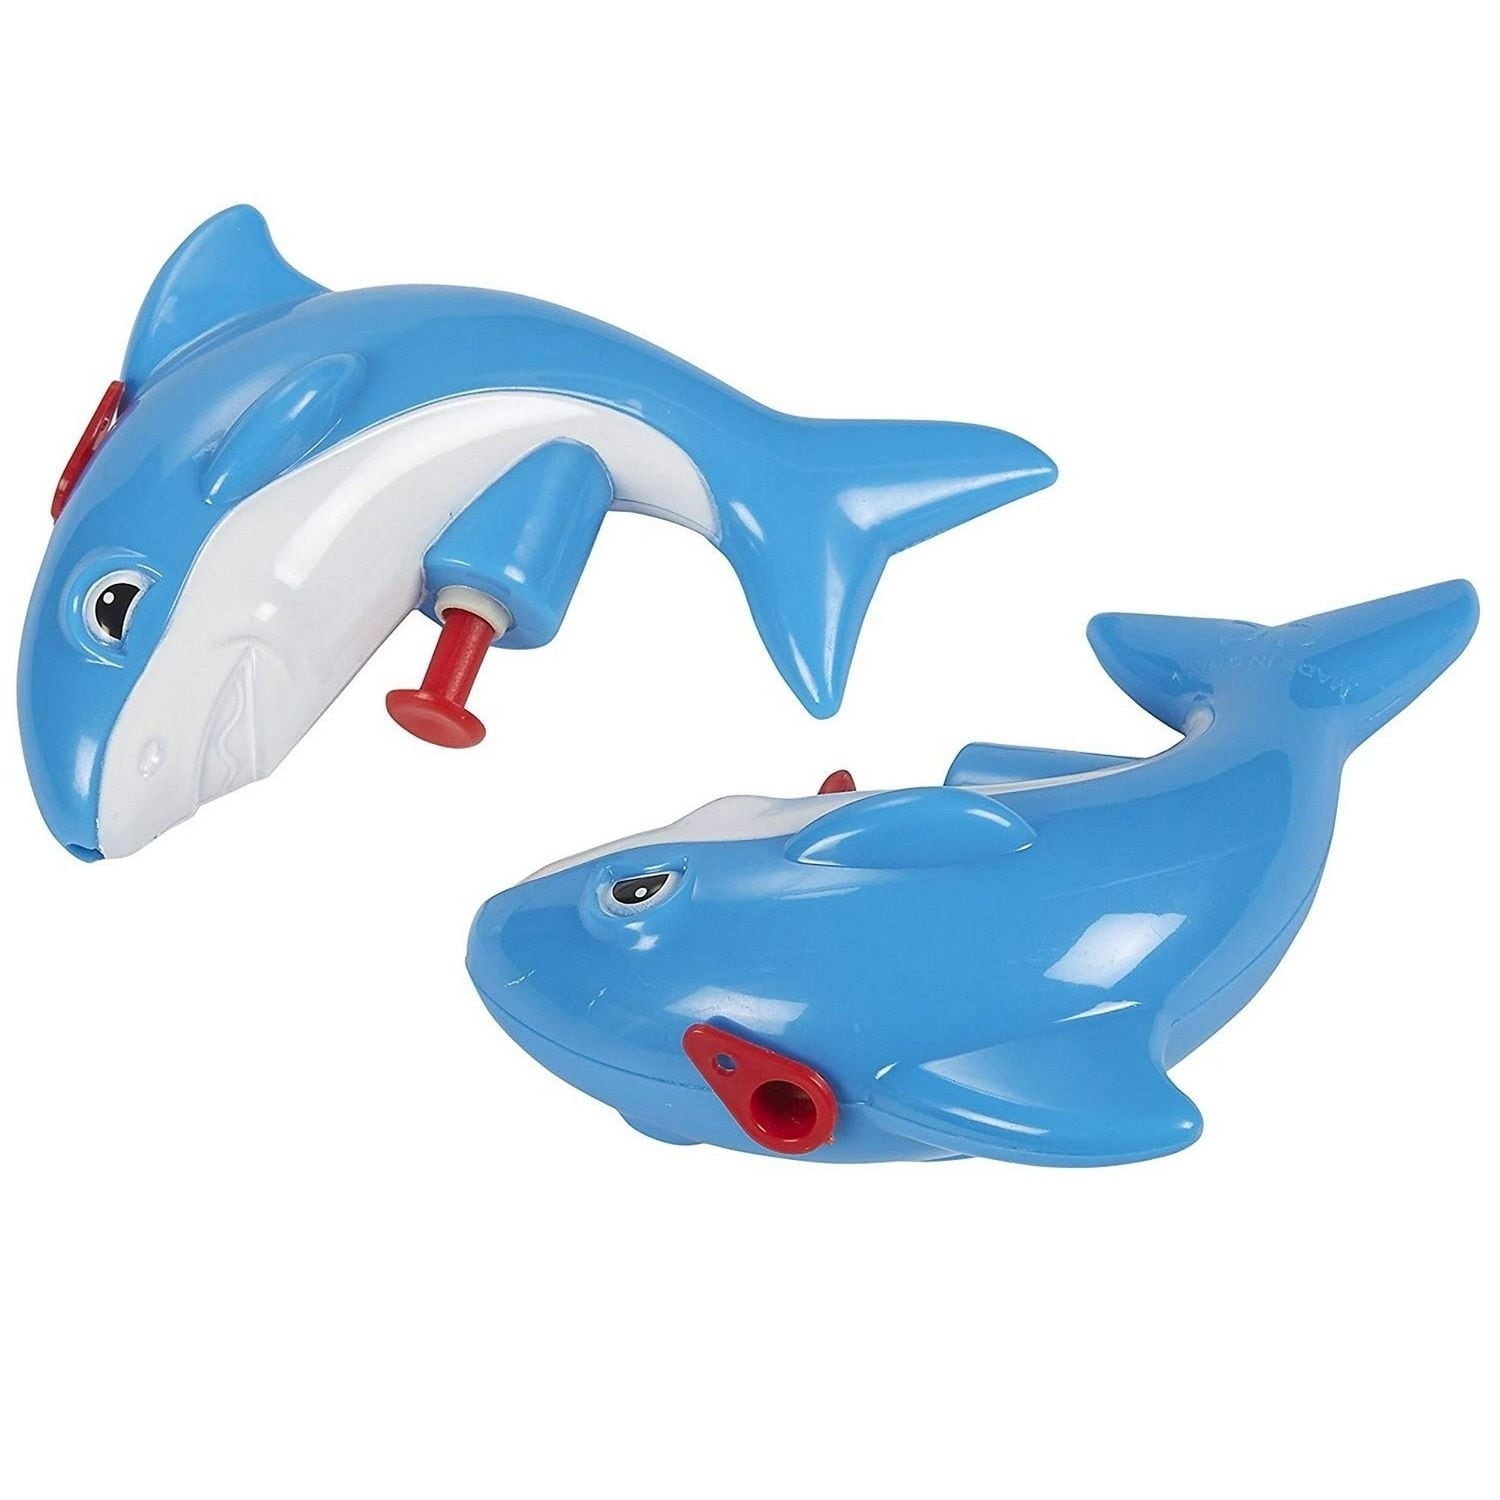 Ages 6 and Up 12-Pack Mini Animal Squirt Guns Blue Shark Toys for Kids